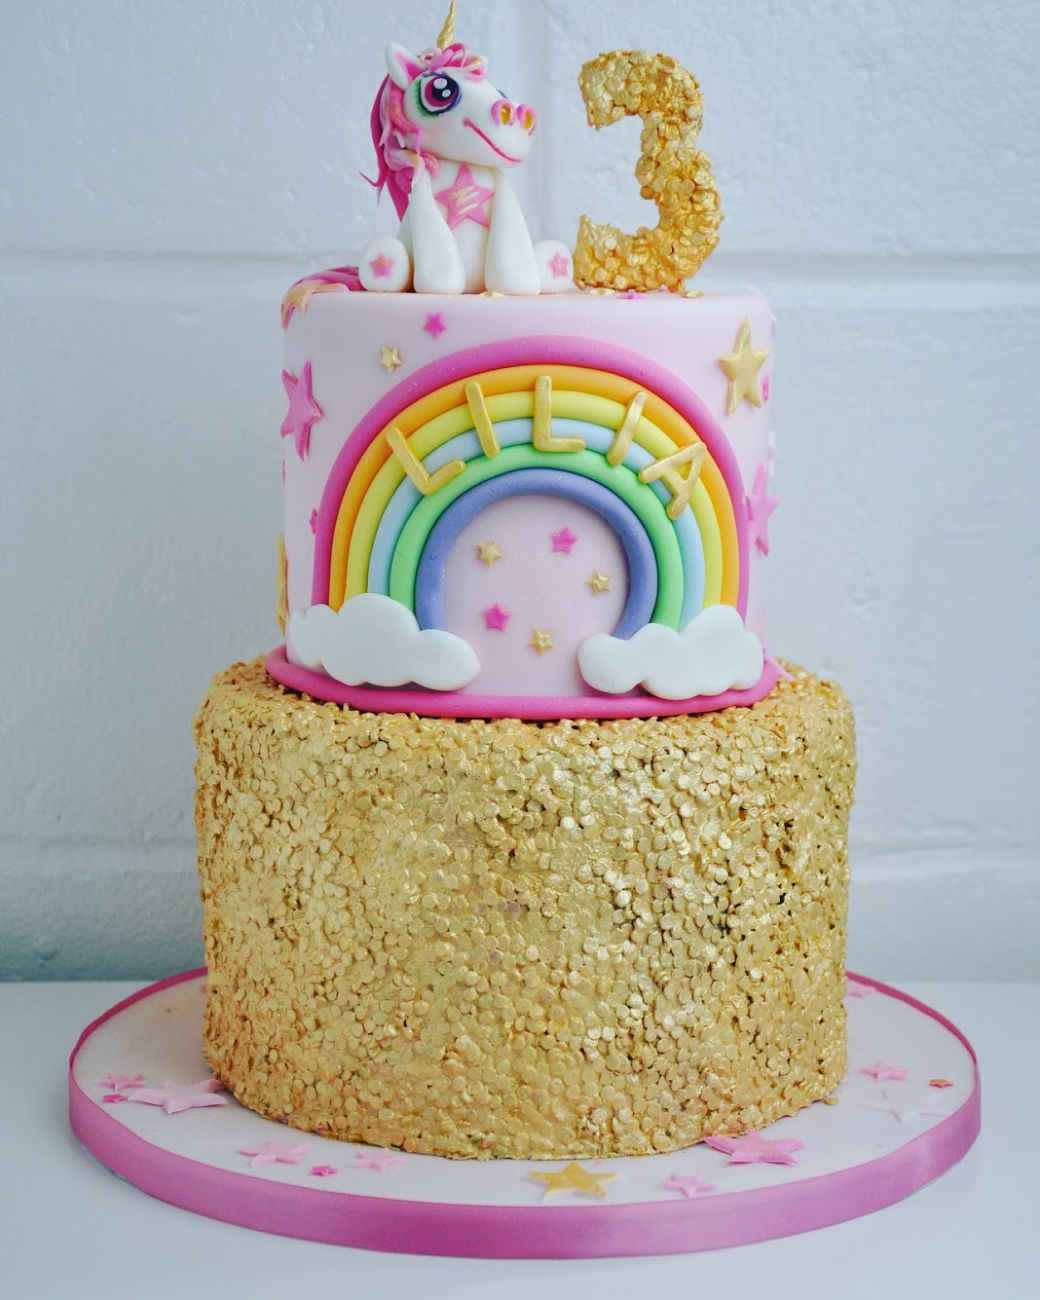 a two tiered gold, white and rainbow cake with a unicorn on top